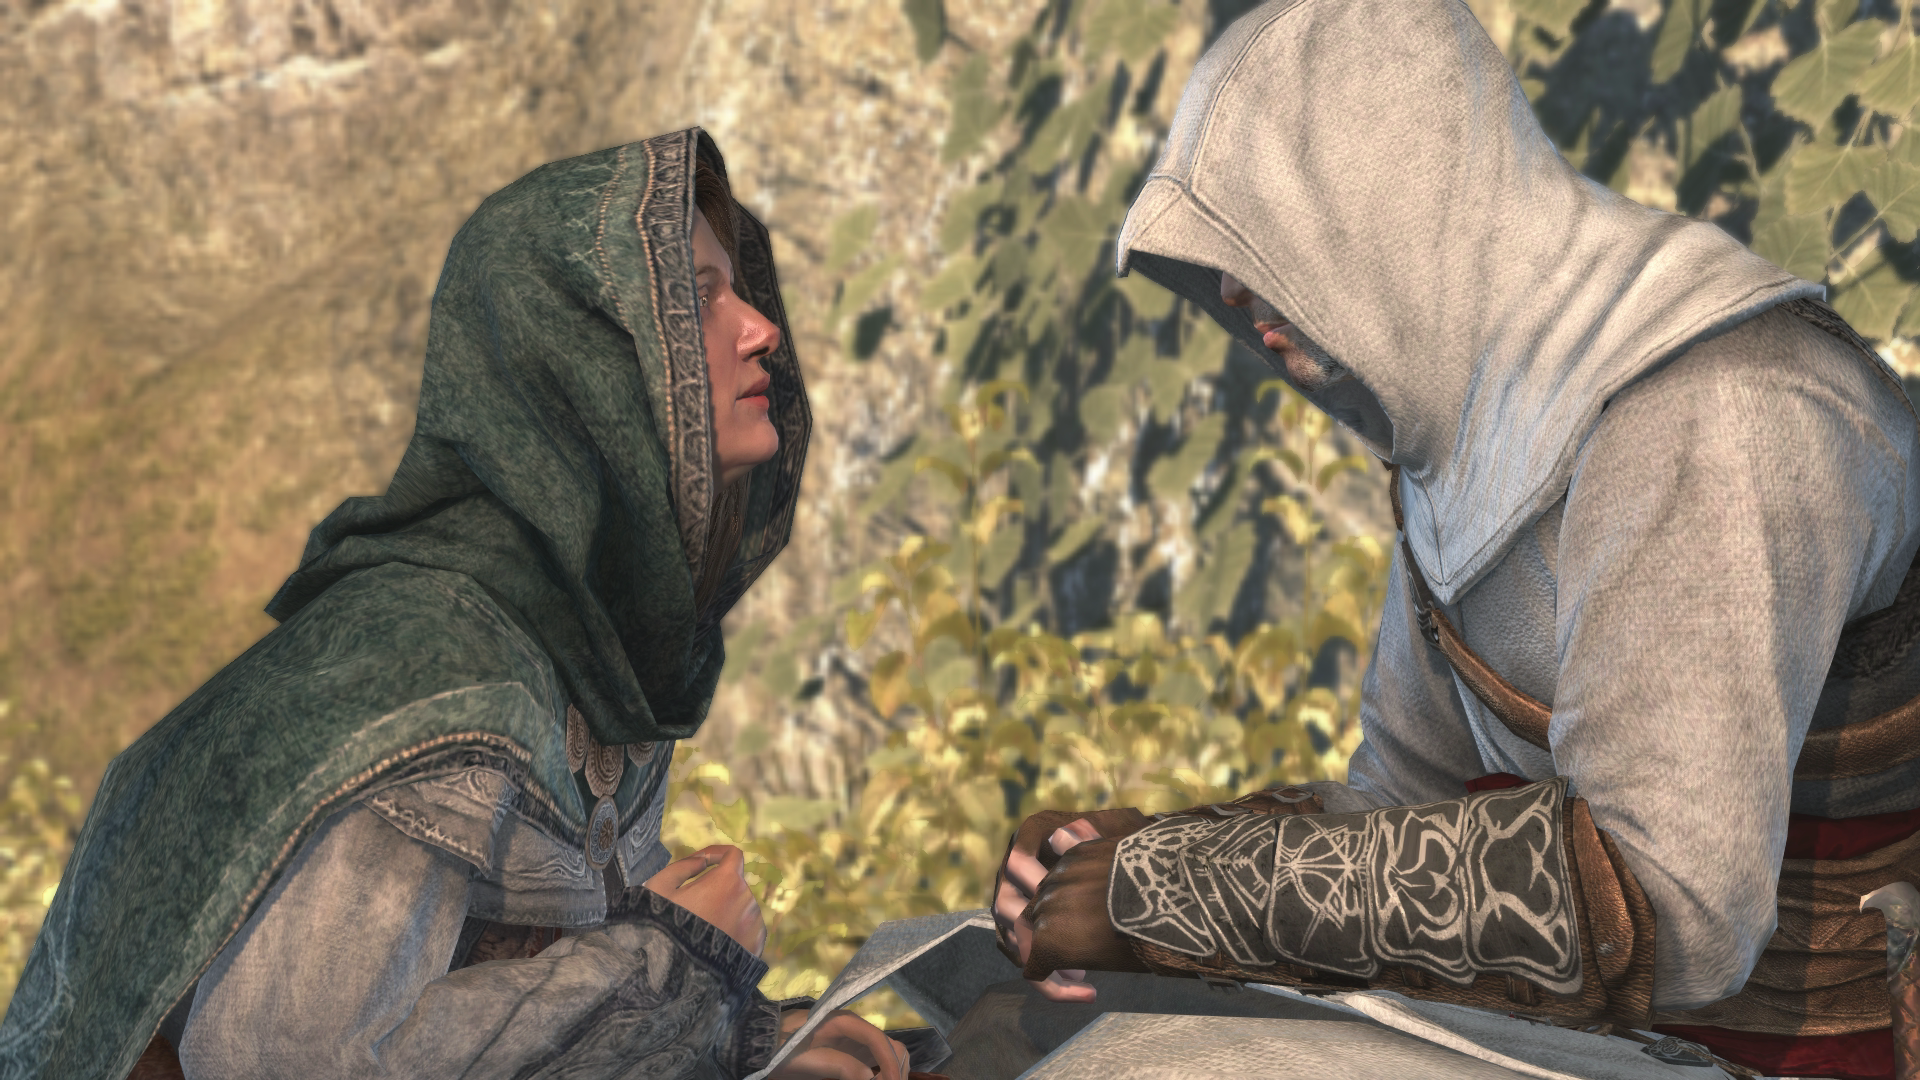 altair and maria relationship goals